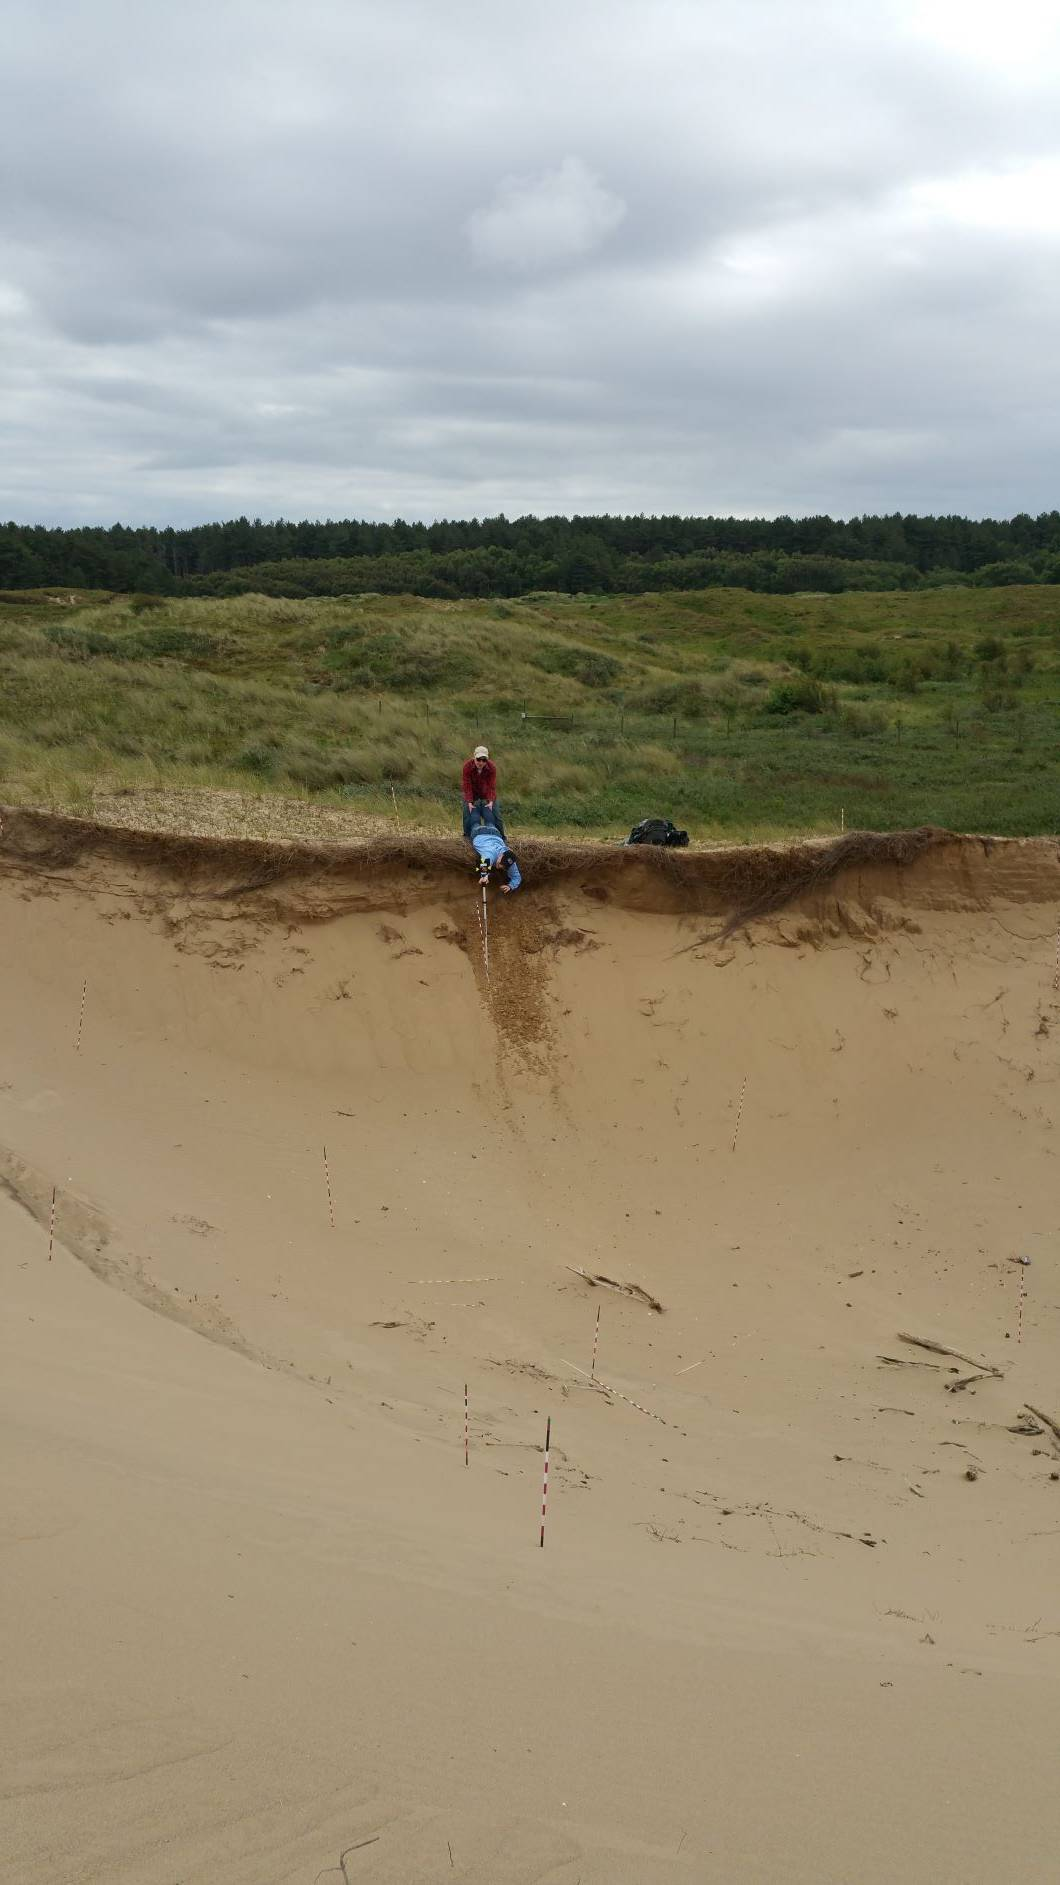 view of a deep sand depression with a prone student leaning out over the rim to hold a surveying rod while another student holds her legs